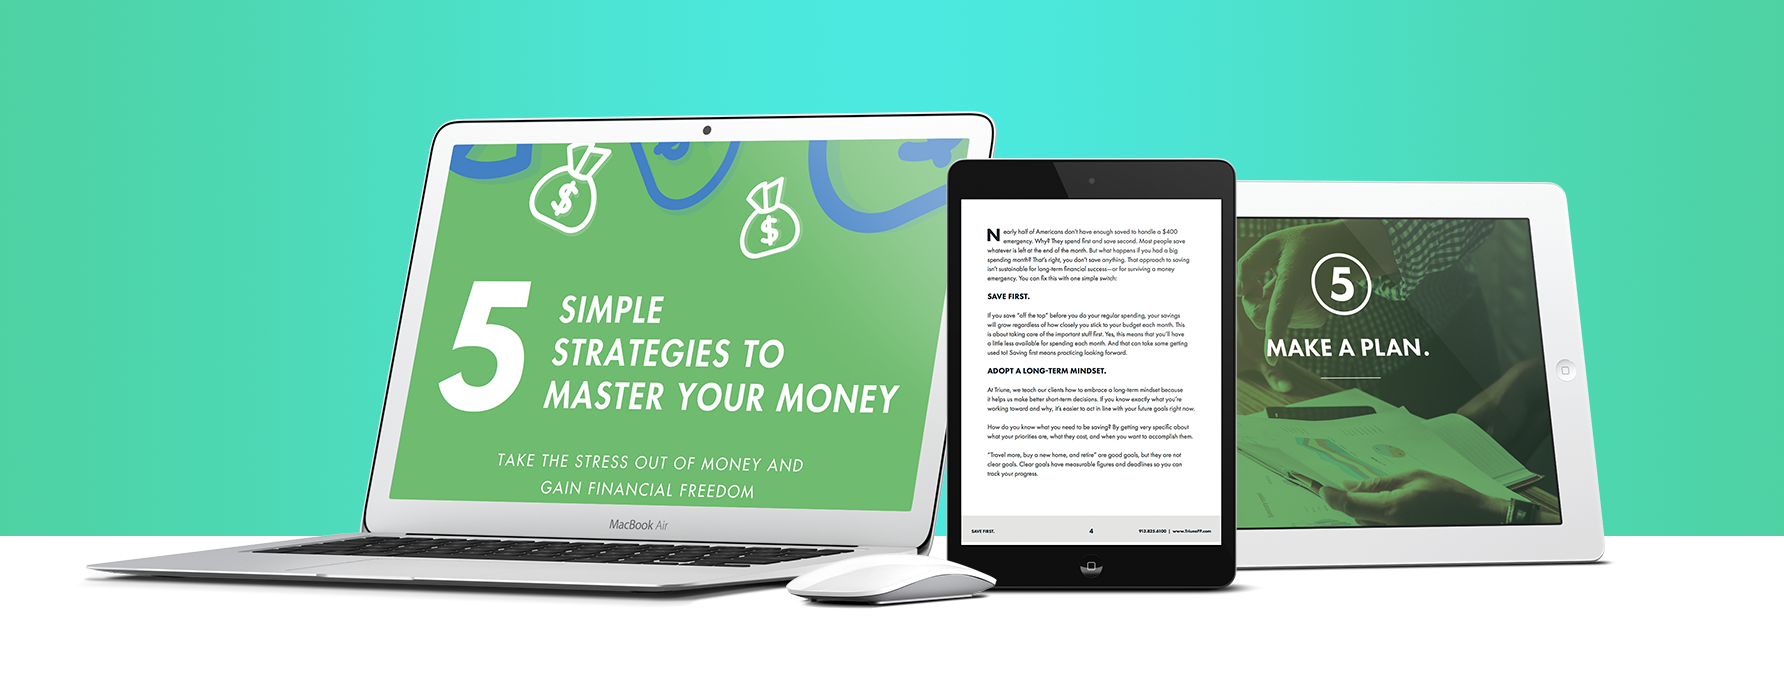 Master Your Money_Mockup.png